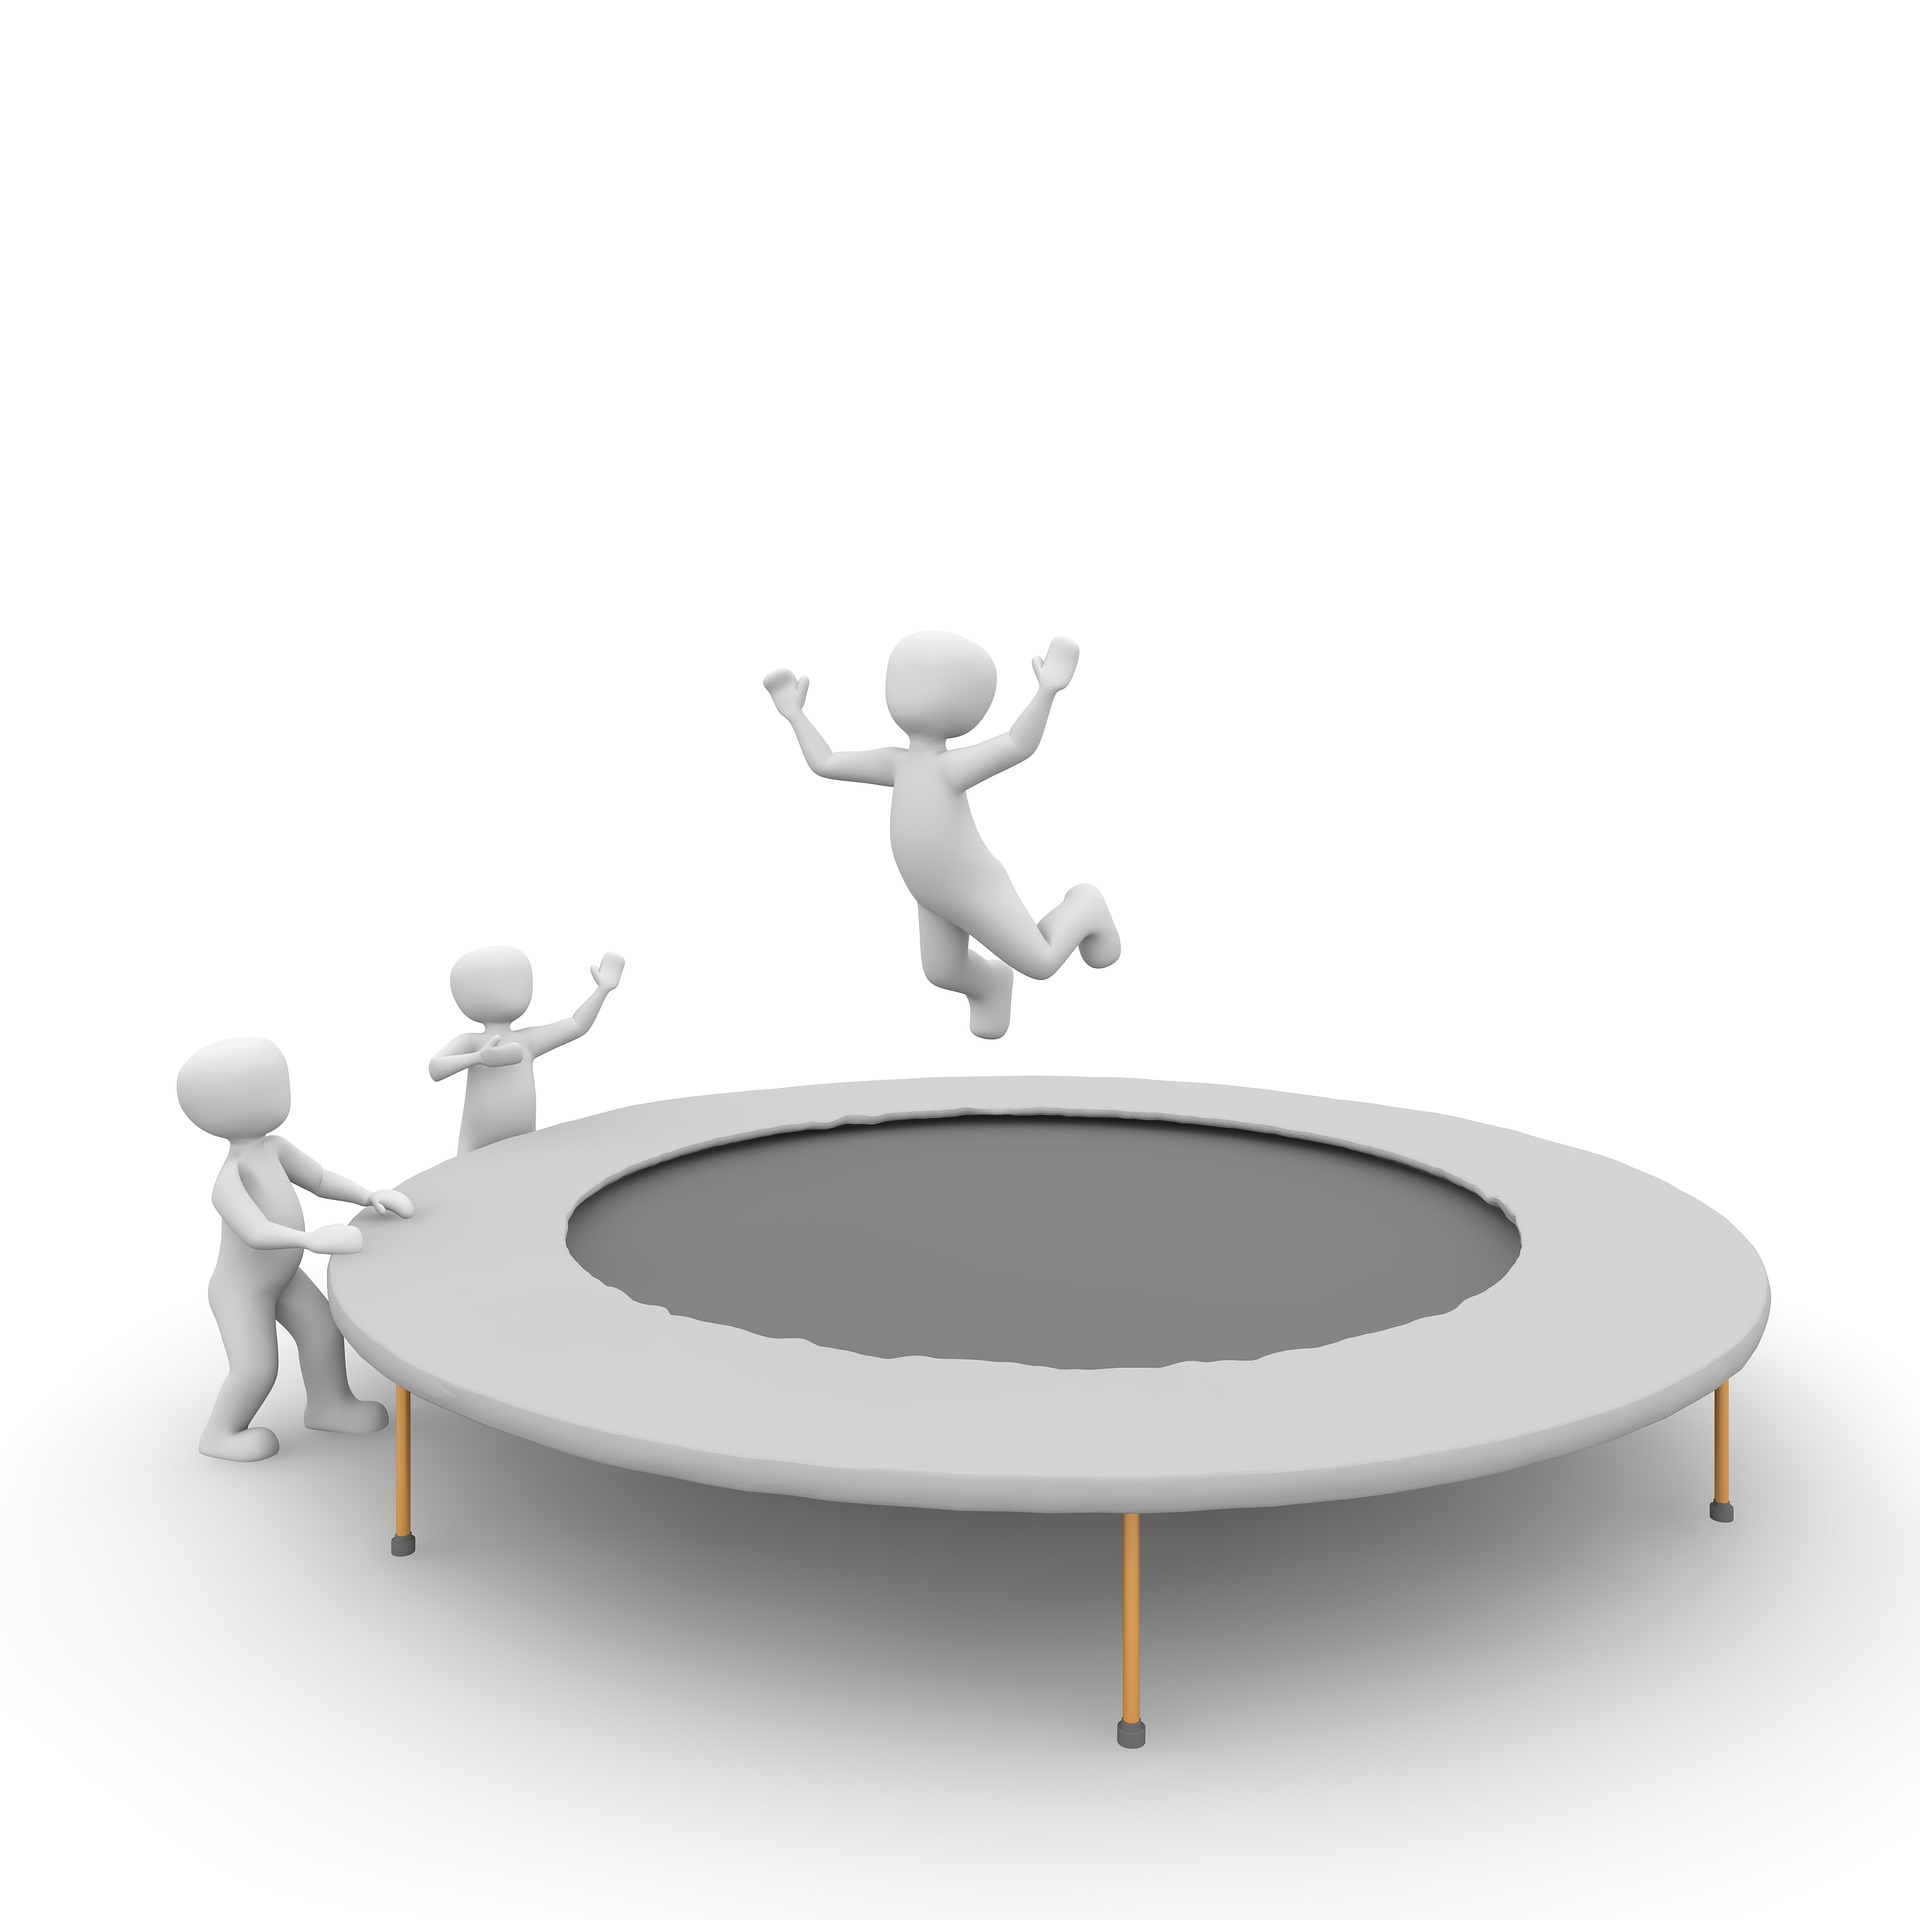 Can Trampoline Be Put on Concrete